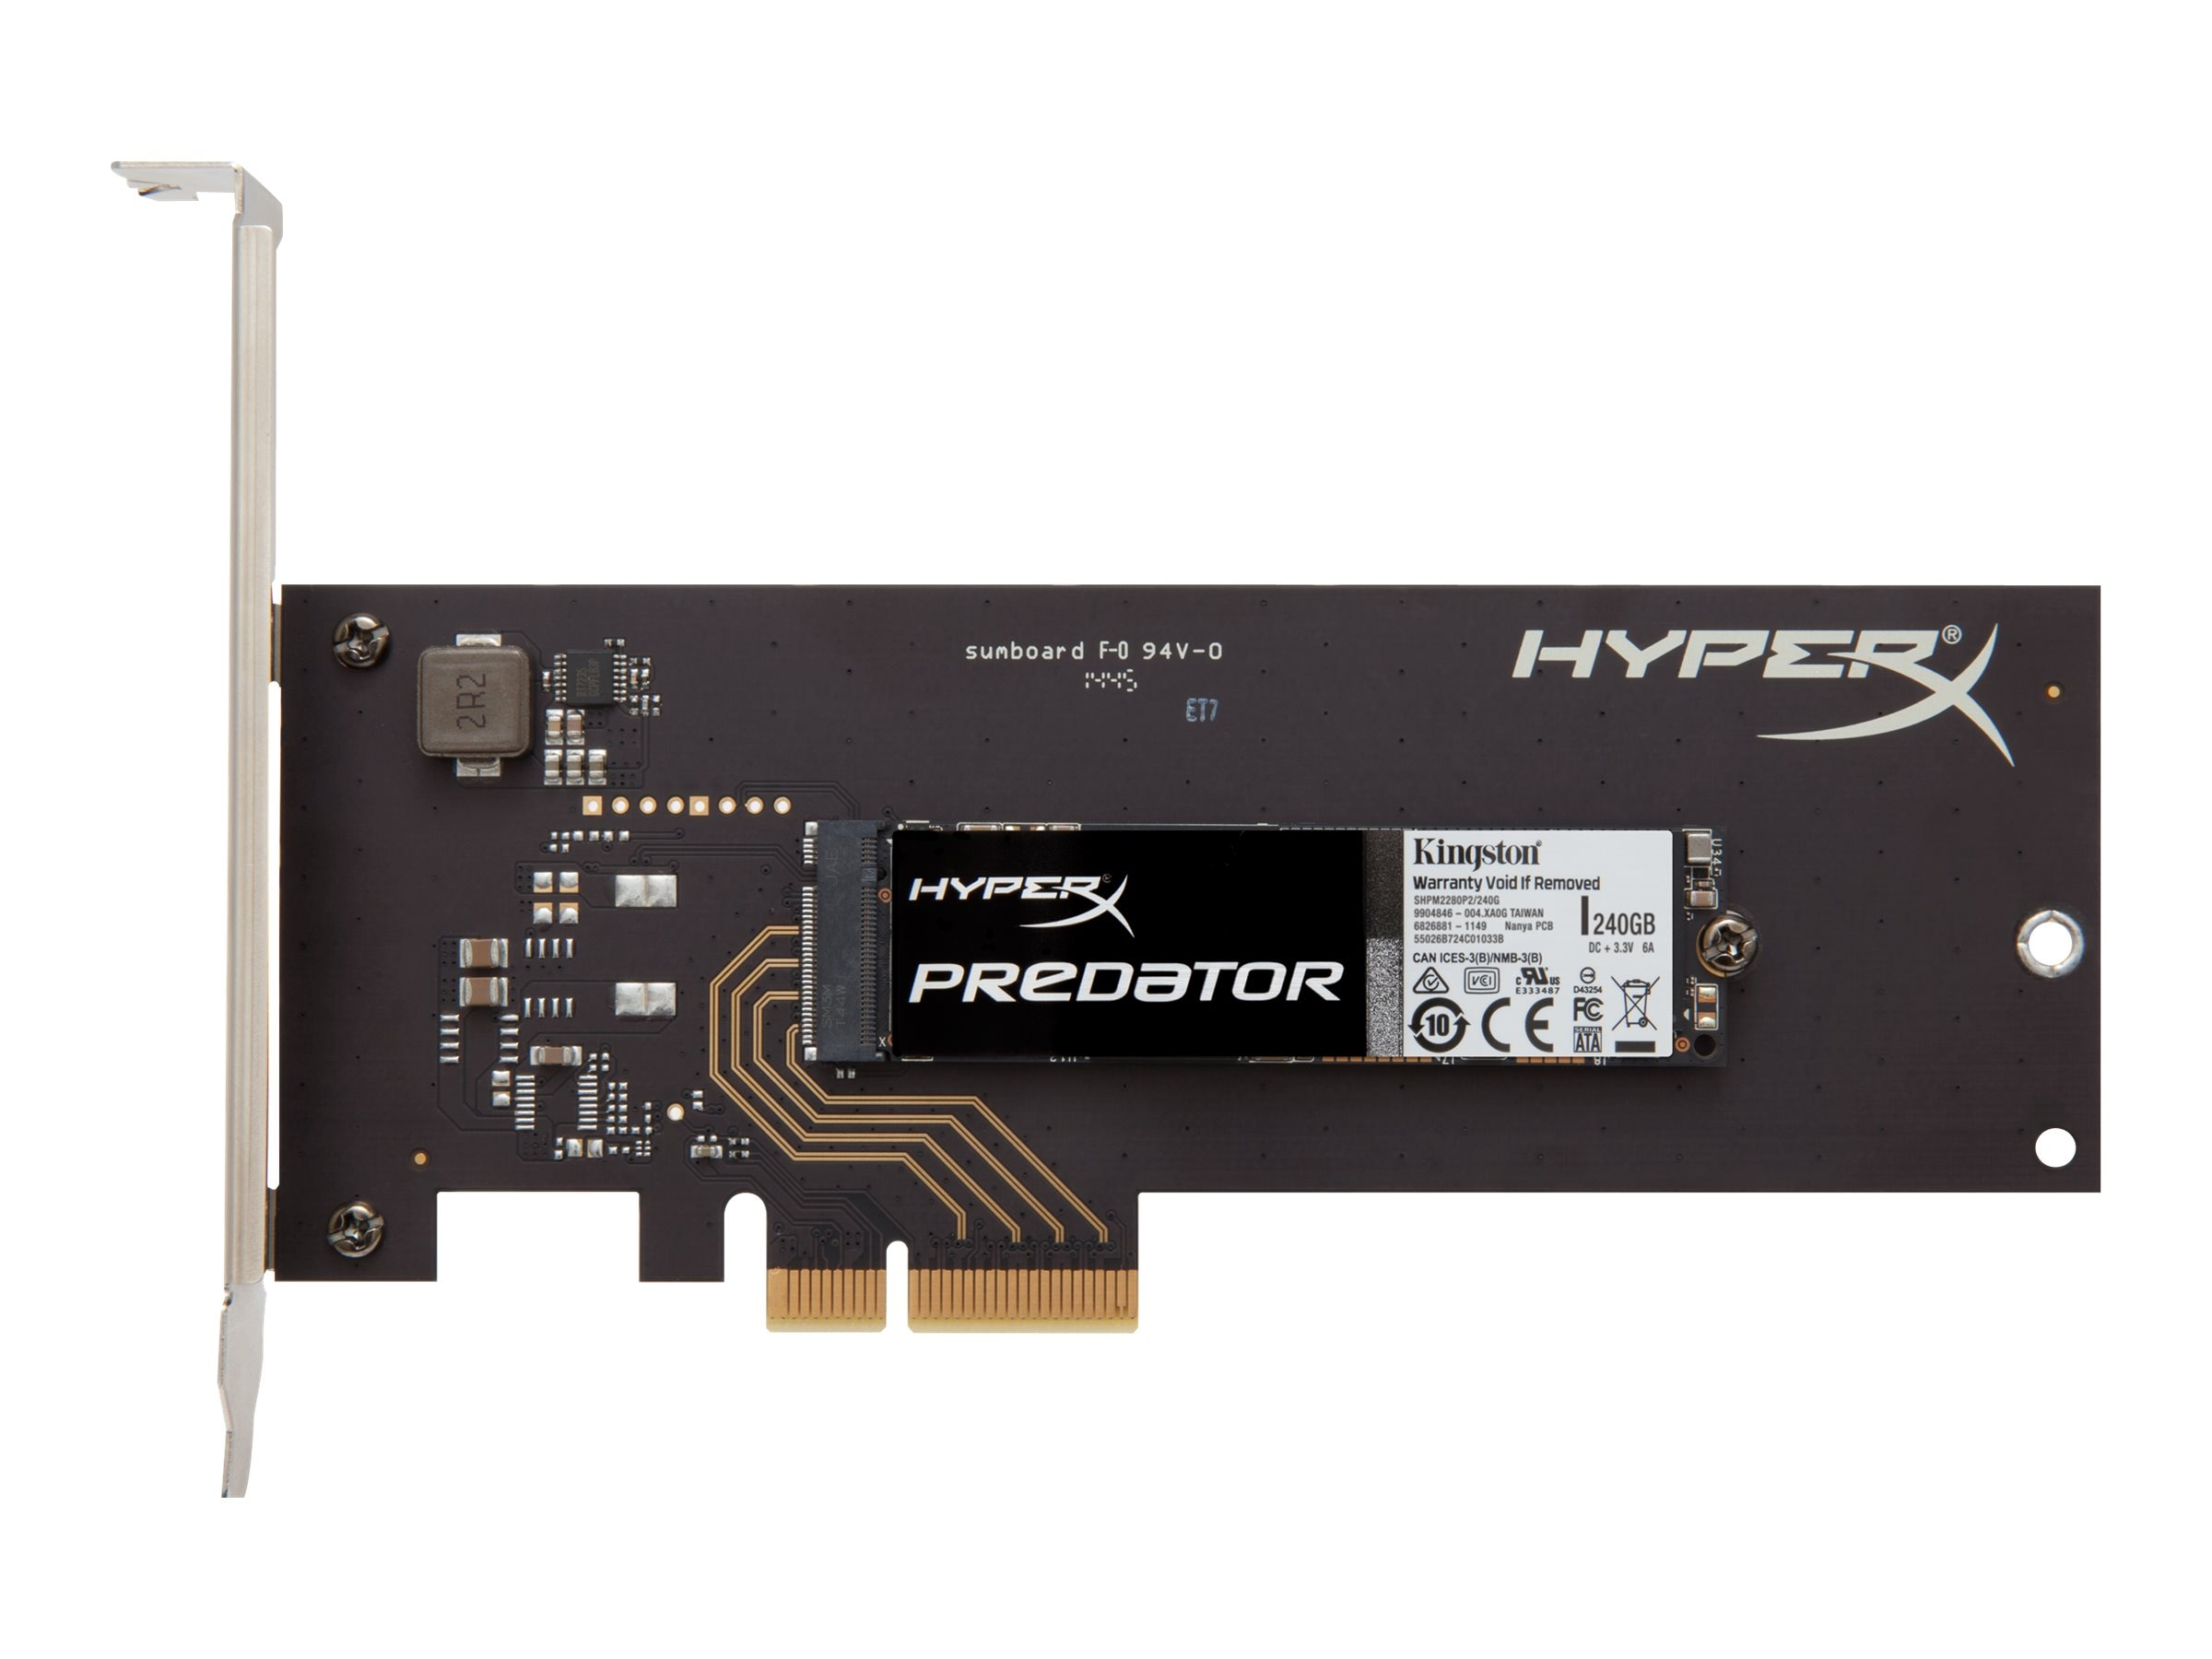 Kingston 240GB HyperX Predator PCIe Gen2 X4 HHHL Internal Solid State Drive, SHPM2280P2H/240G, 19213313, Solid State Drives - Internal